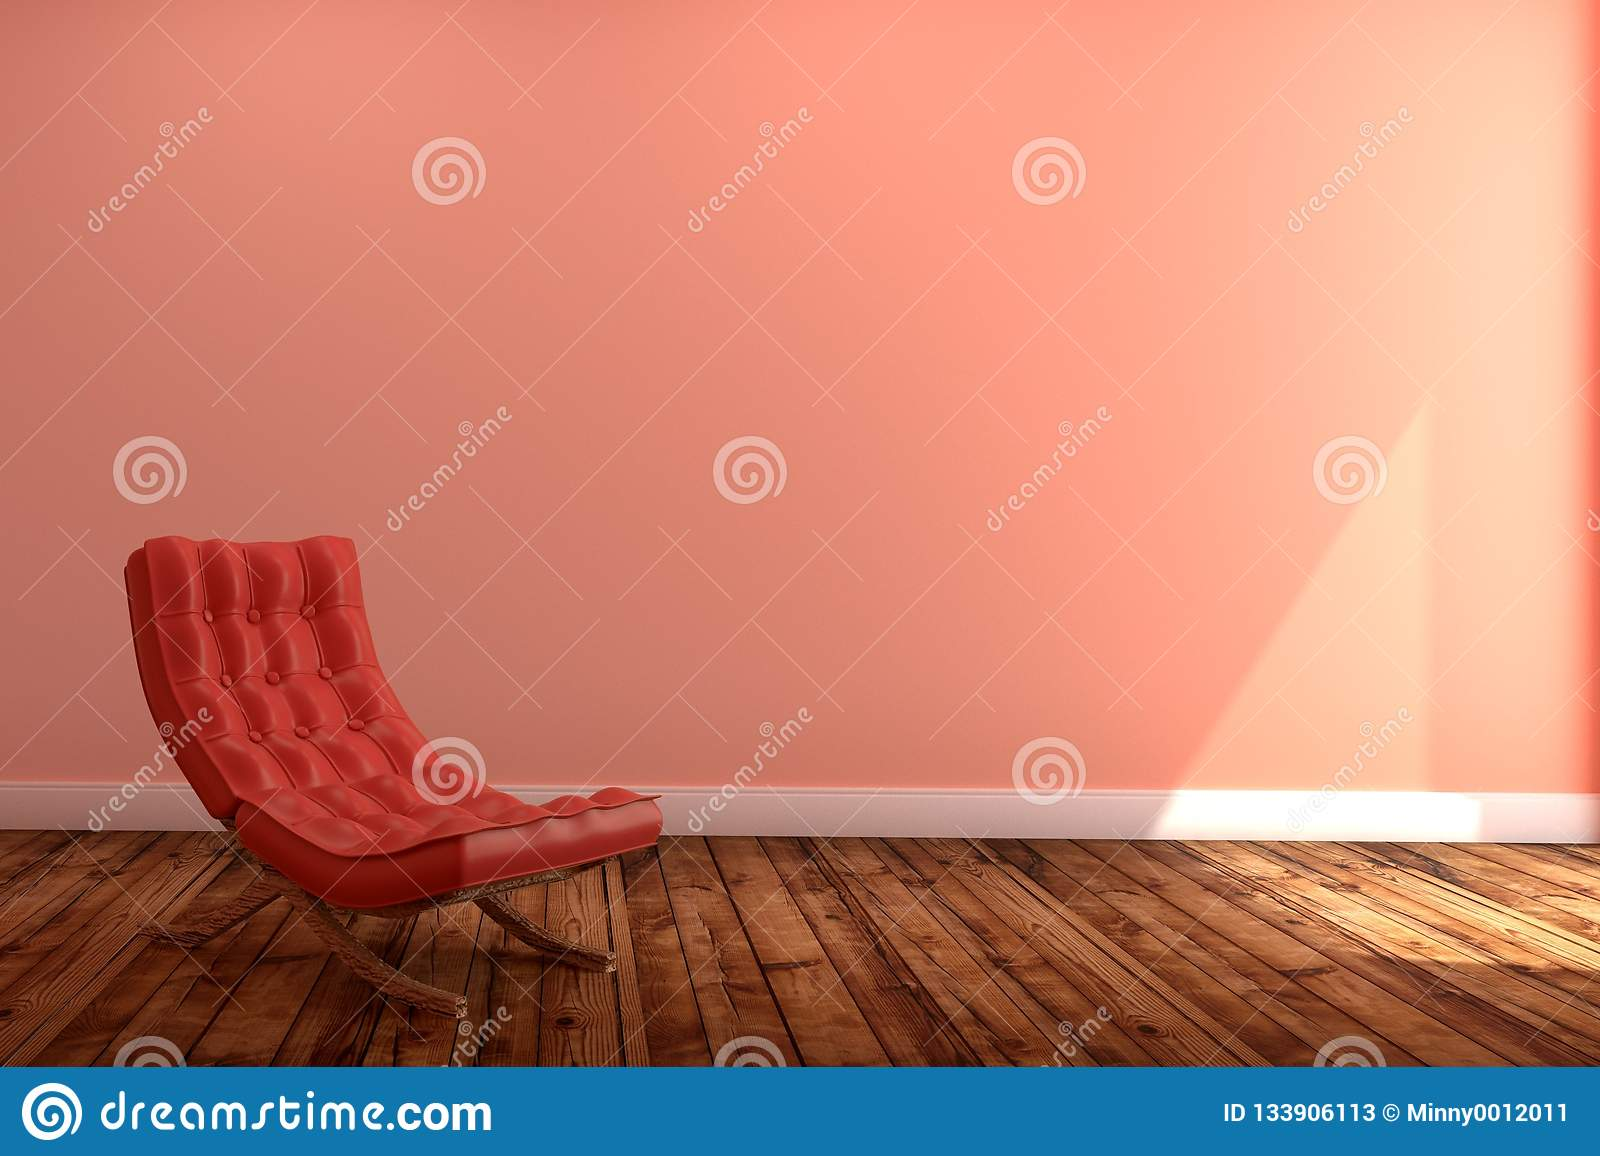 Living Room Interior With Red Sofa Wooden Floor On Empty Pink Wall Background 3d Rendering Stock Illustration Illustration Of Cabinet Apartment 133906113